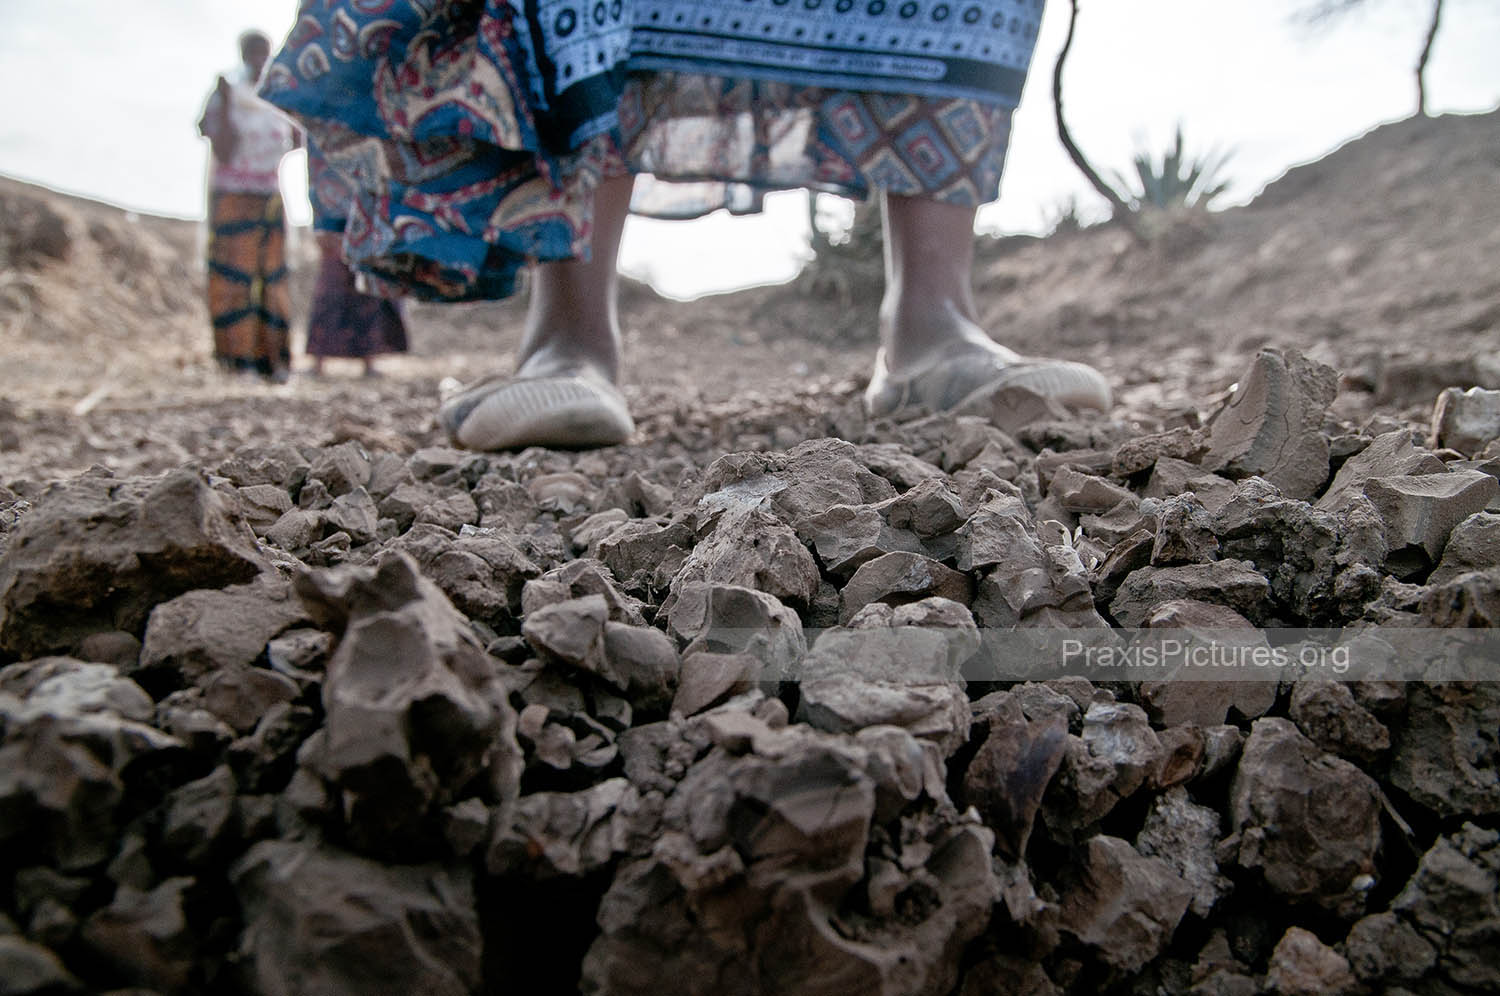 """NGORBOB: OUR LAND IS DYING AND SO ARE WE  (Photoessay)     """"The climate has changed. There is no water here, nothing. Our land is dying and so are we""""  Ngorbob elders.     Ngorbob is a small Masai village near Arusha, Tanzania. They have not seen rain for over a year, and as a result their farmlands and livestock are dying. Many of the residents of Ngorbob have already been forced to leave their ancestral home in search of water and work...(more)"""